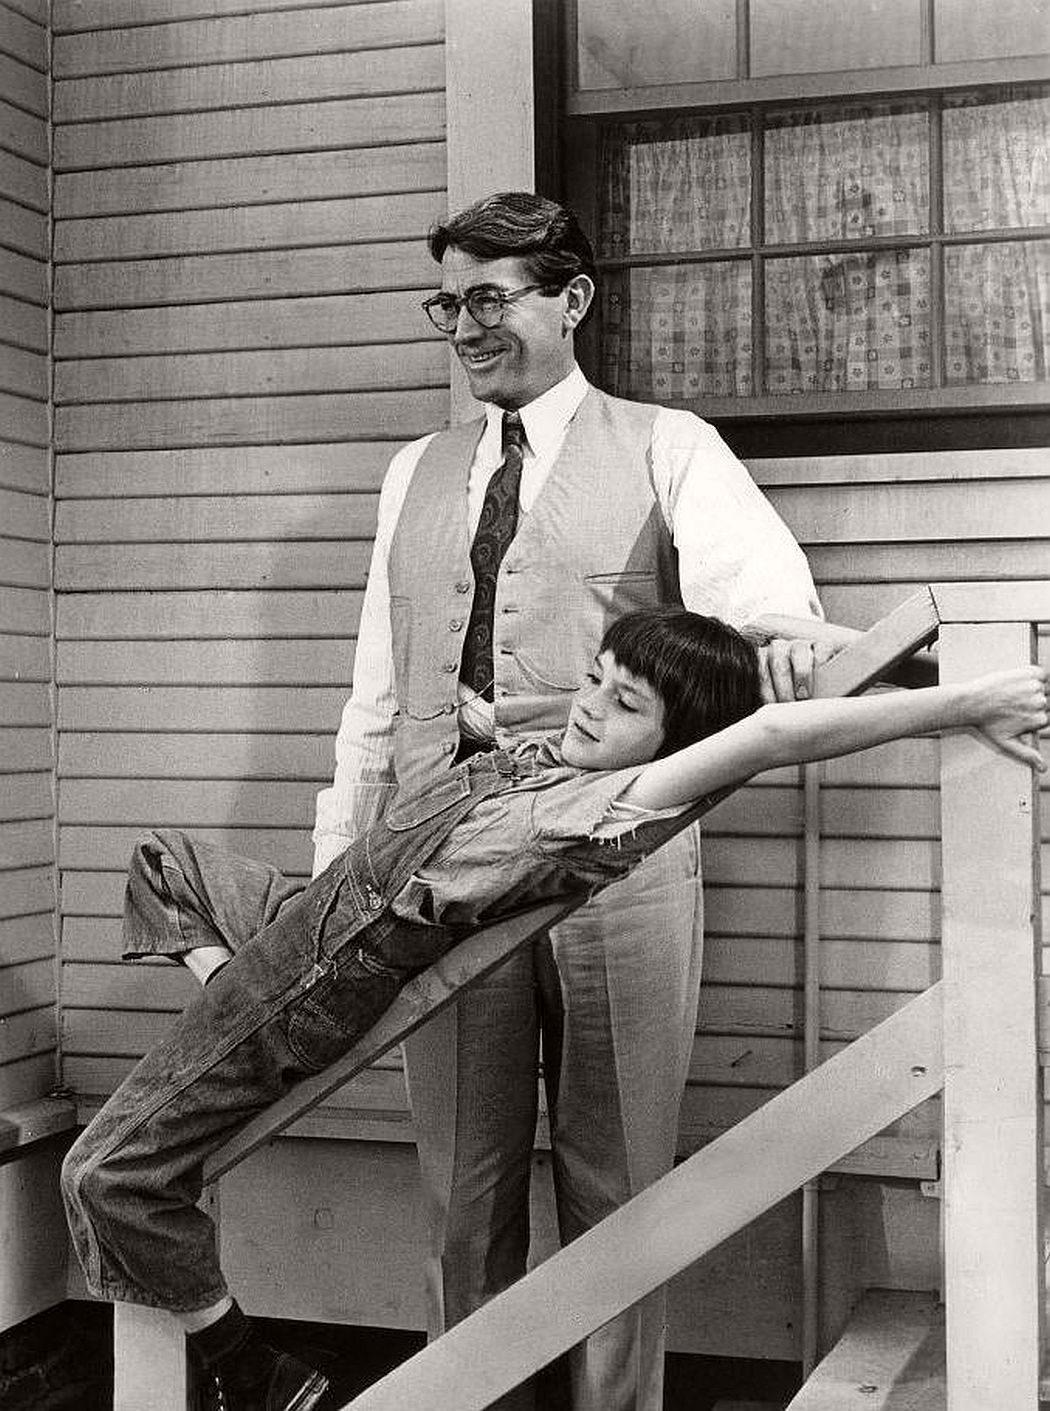 Vintage: Behind the Scenes from To Kill a Mockingbird (1962)